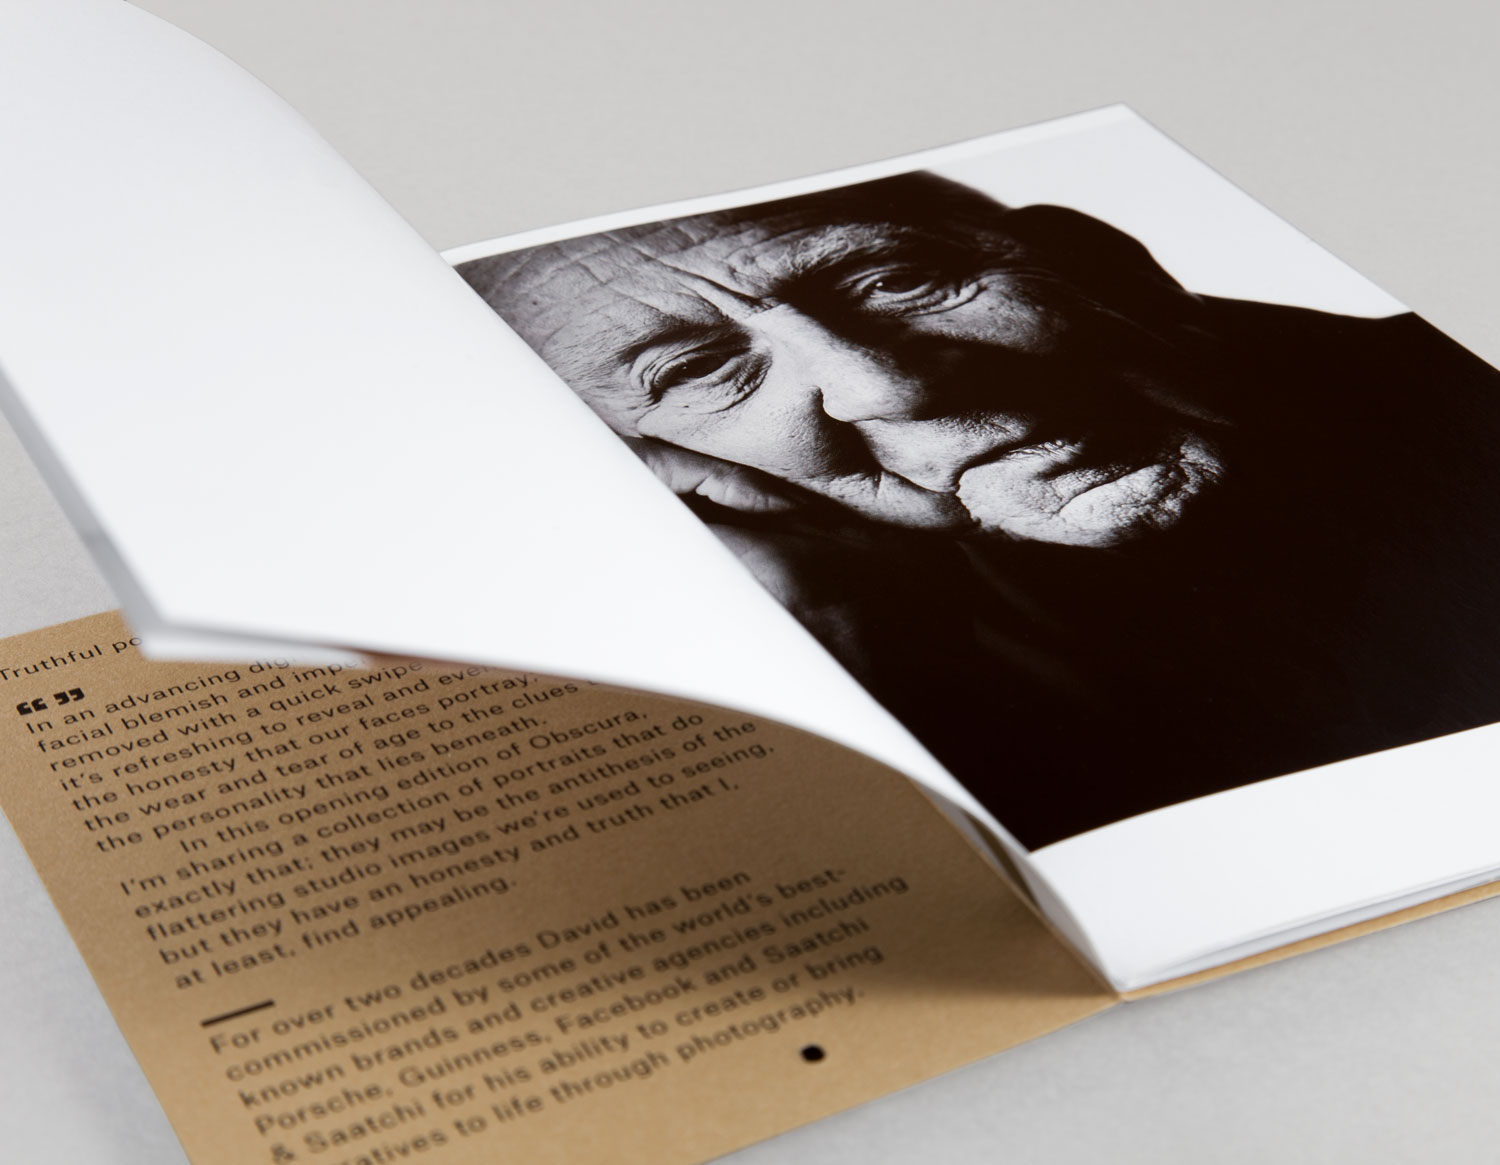 Brand identity and lookbook by London-based graphic design studio ico Design for photographer David Rowland